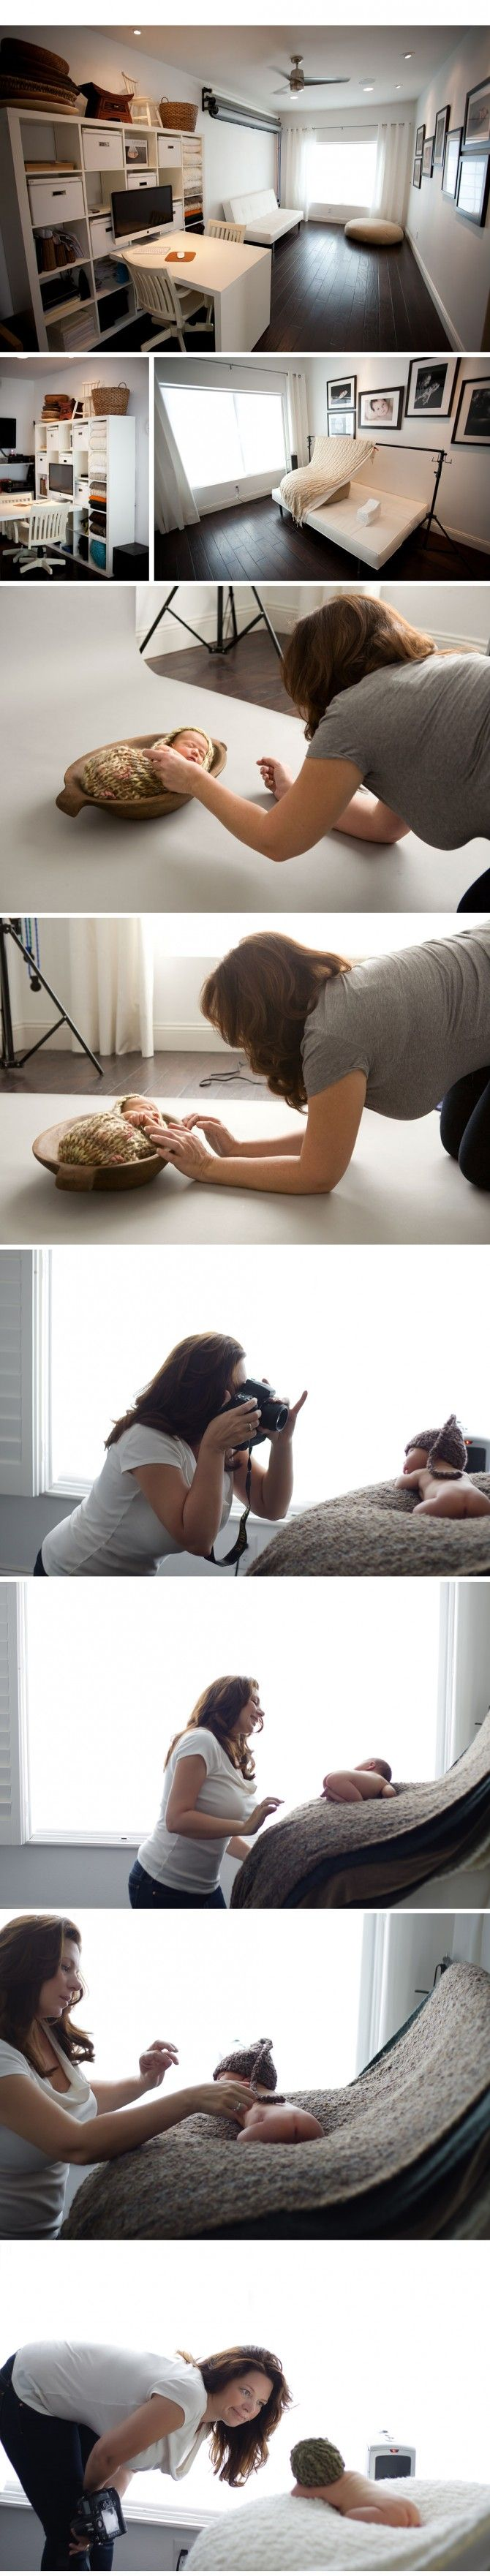 Nice and simple.: Natural Light, Newborn Photography, Photo Studio, Studio Setup, Photography Studios, Photography Ideas